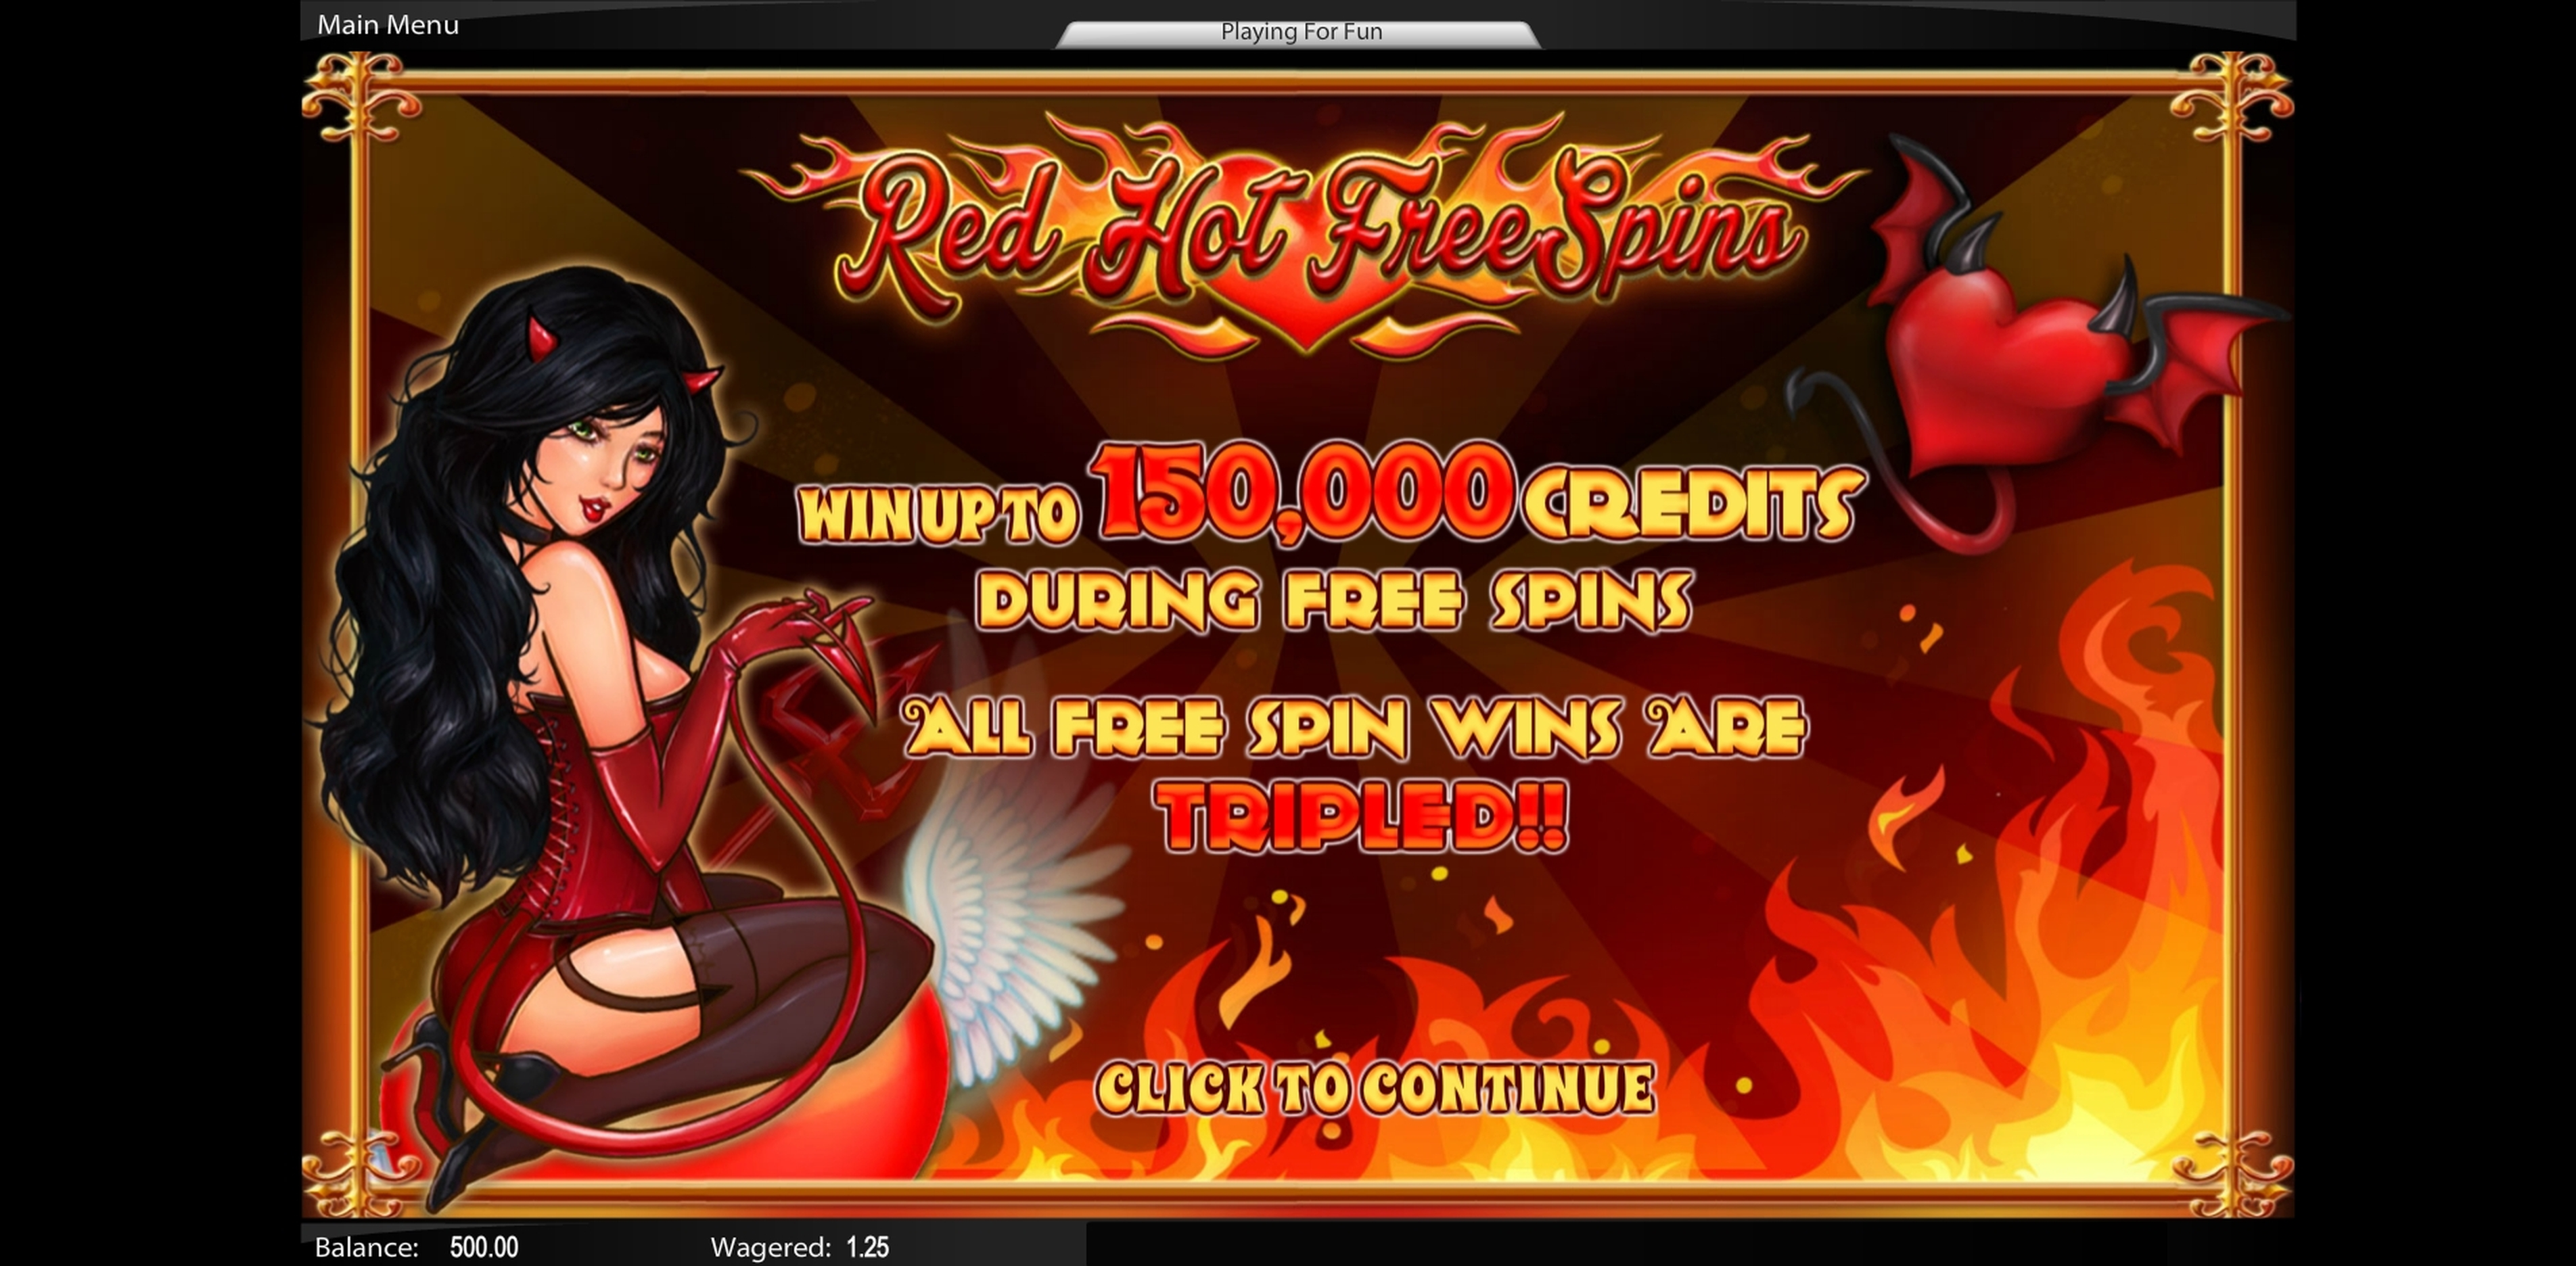 Play Red Hot Free Spins Free Casino Slot Game by Top Trend Gaming